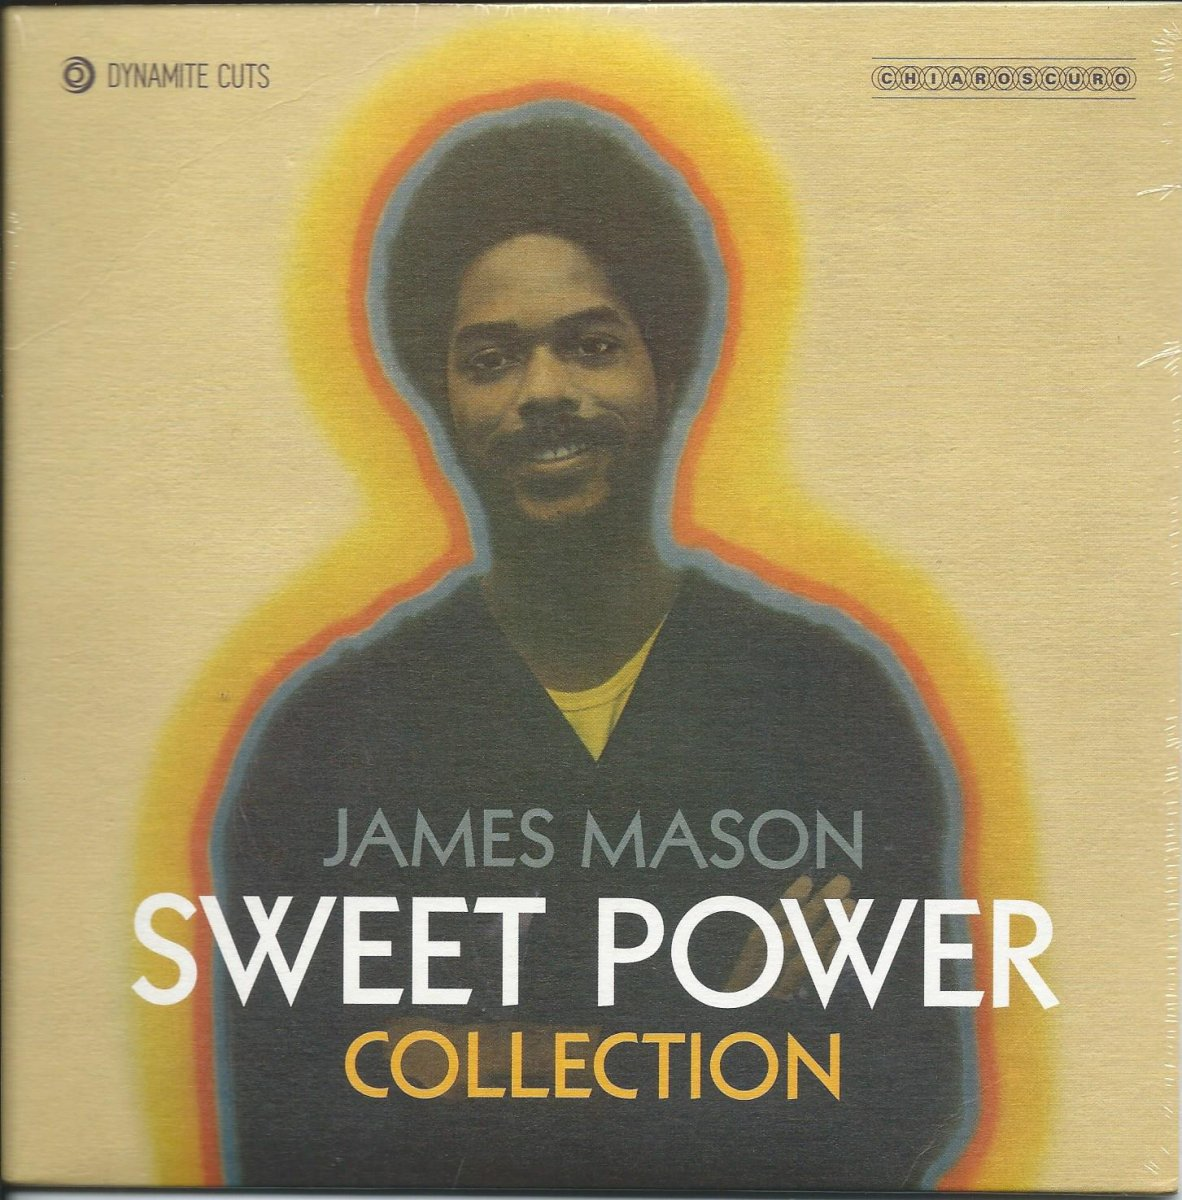 JAMES MASON ‎/ SWEET POWER YOUR EMBRACE / SLICK CITY (SWEET POWER COLLECTION) (2×7